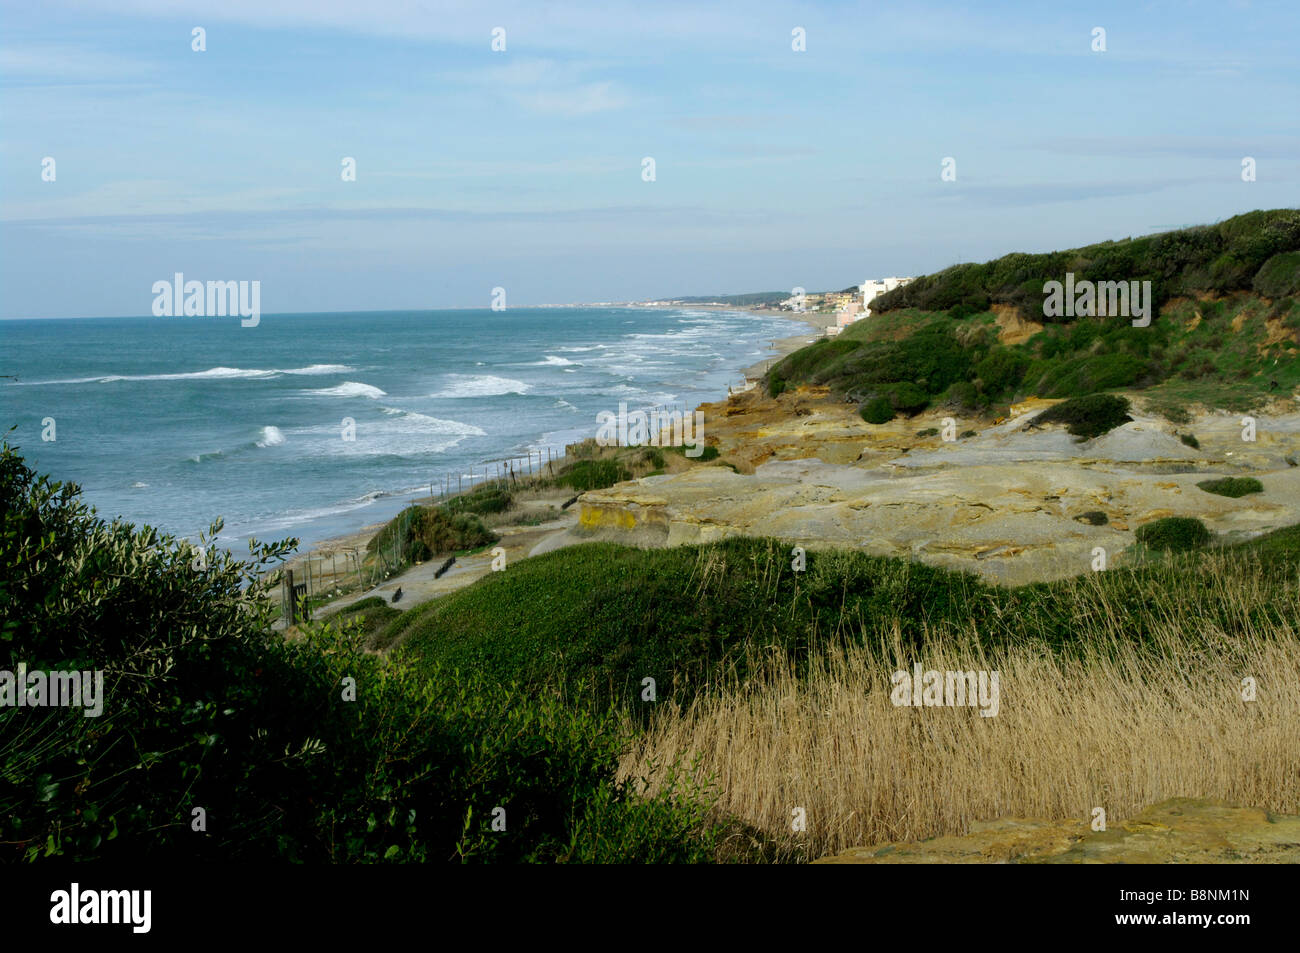 View of coastline from Tor Caldara Nature Reserve - Stock Image